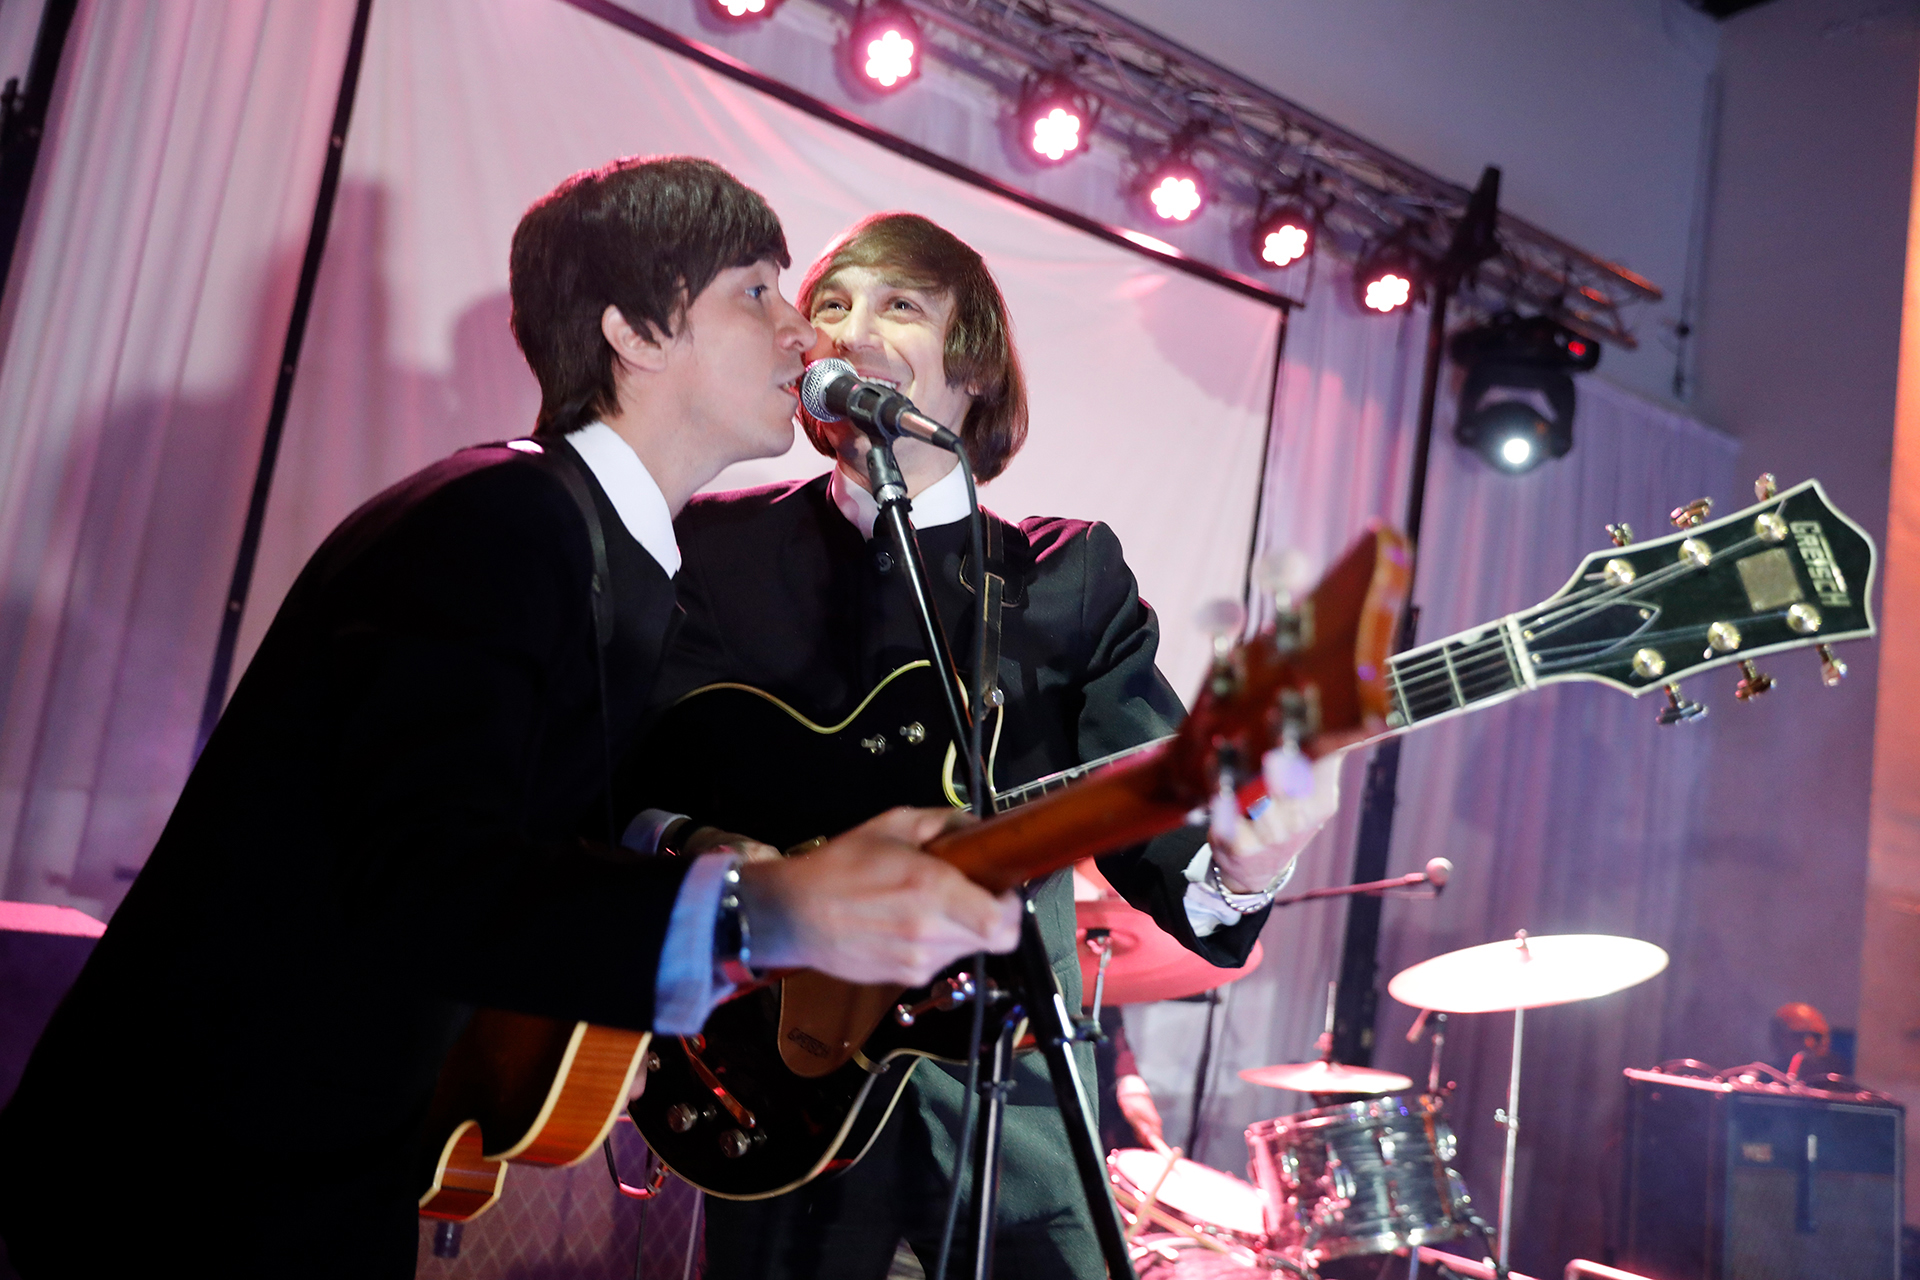 Celebrando sus 30 años, la banda The Beats realizó un tributo a The Beatles interpretando sus temas más célebres